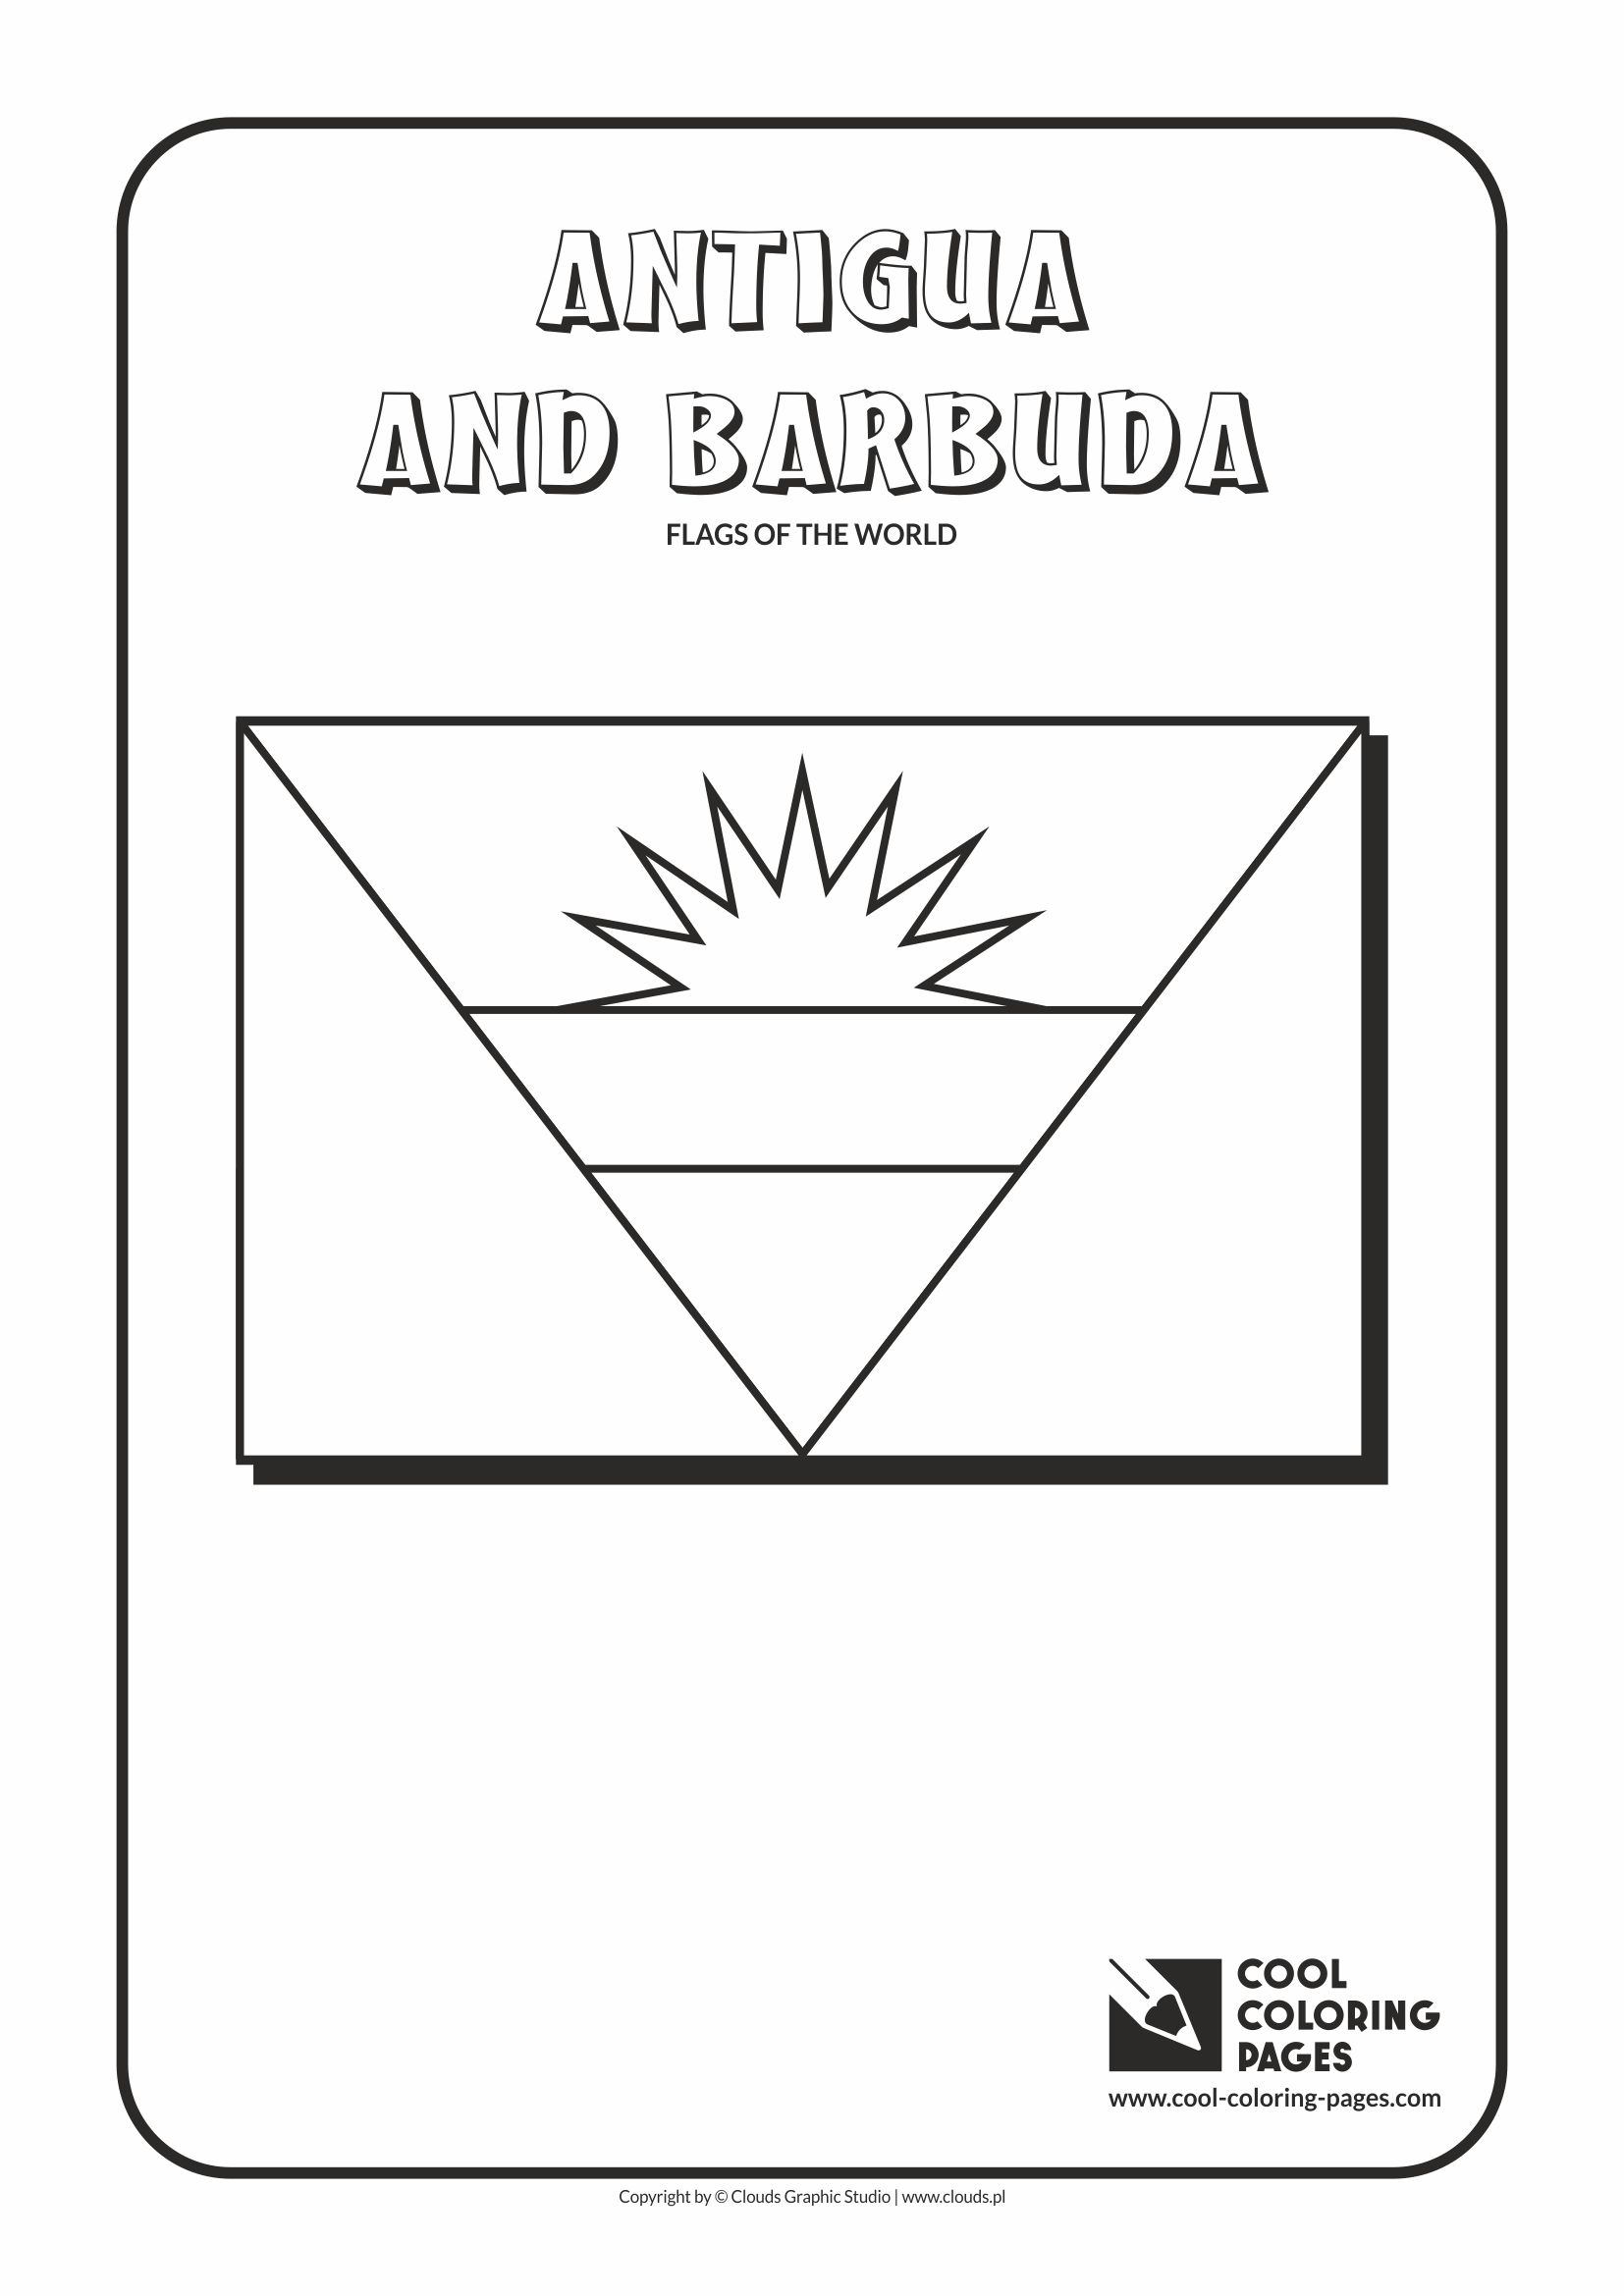 cool coloring pages flags of the world antiqua and barbuda flag - Flags World Coloring Pages